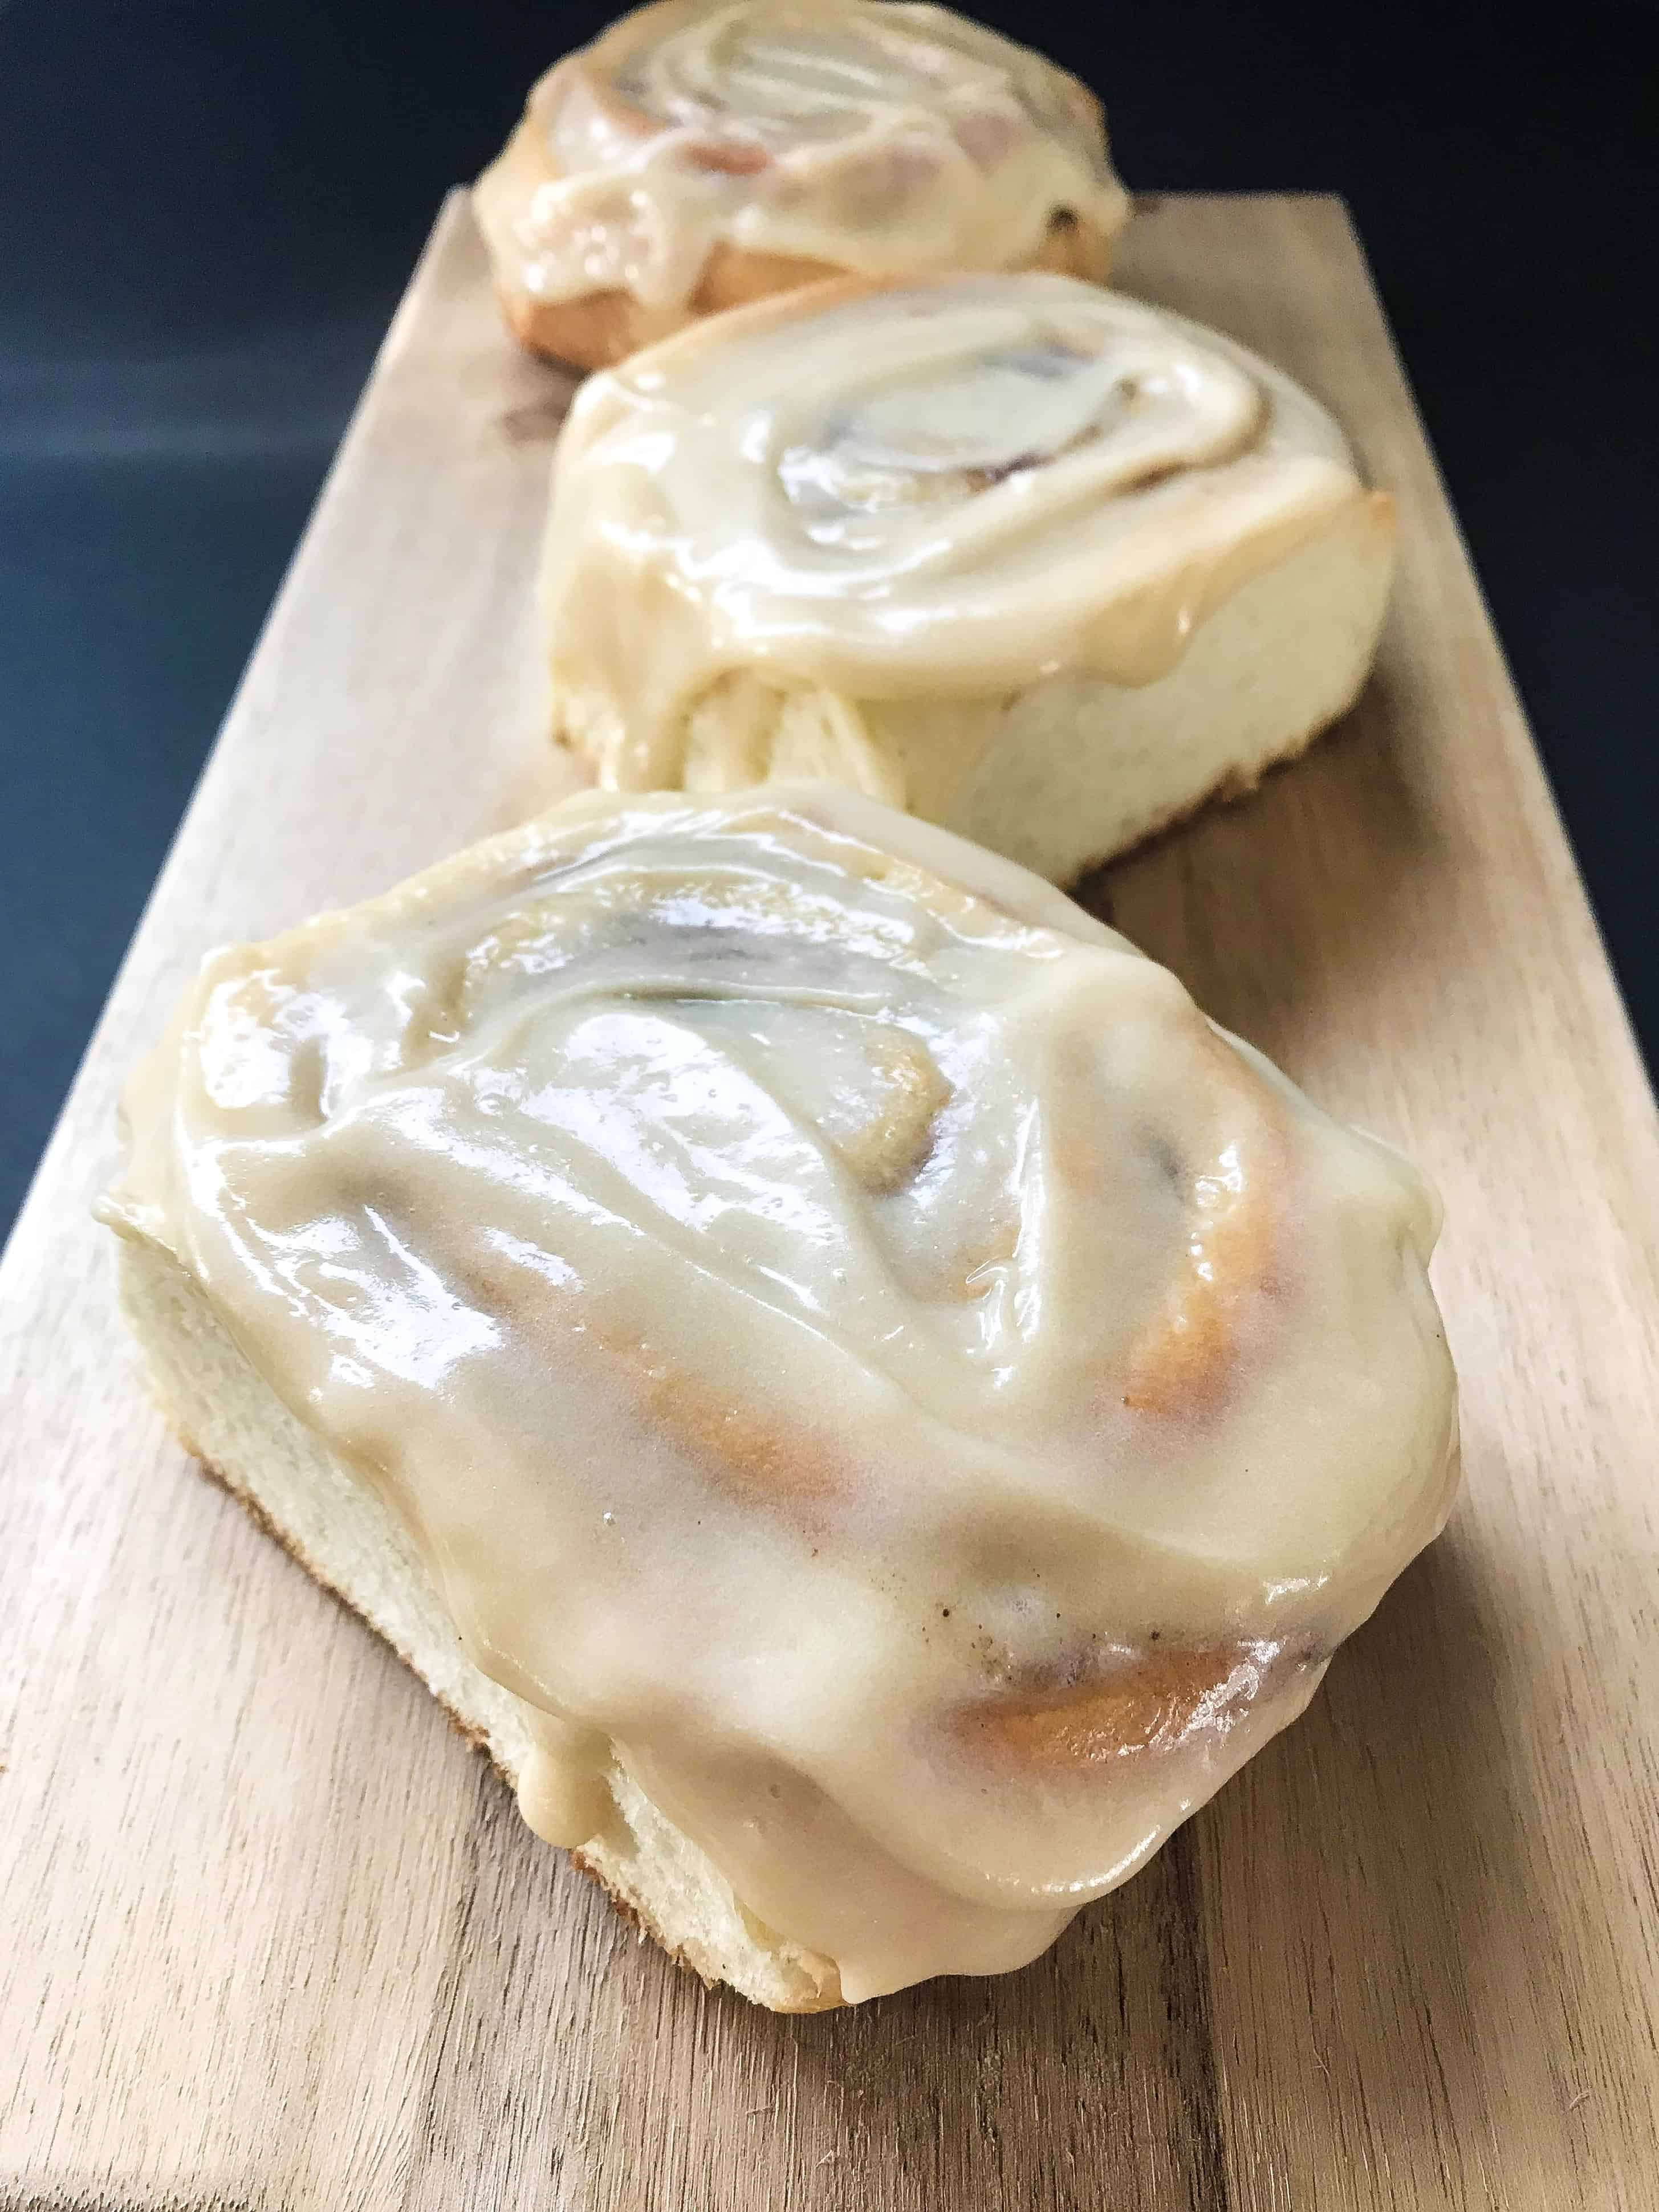 3 homemade cinnamon buns on a wooden tray, a side photograph, showing the cream cheese frosting dripping down the sides